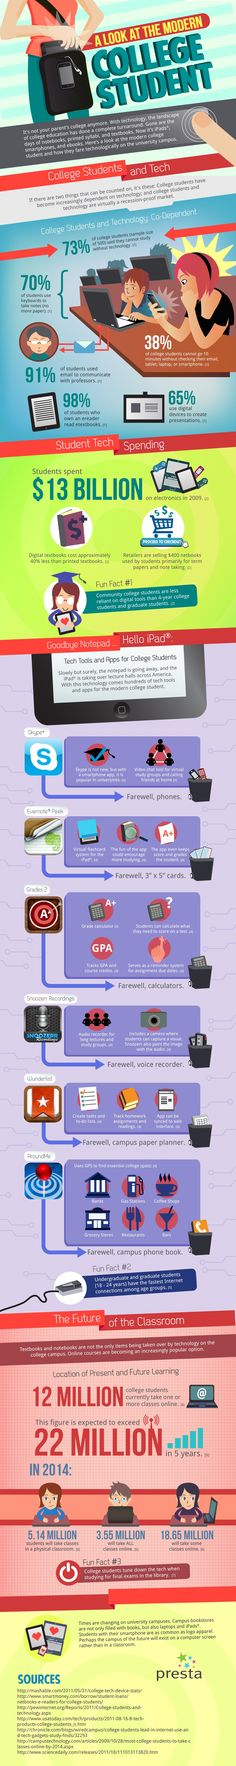 The Modern College Student Infographic - http://elearninginfographics.com/modern-college-student-infographic/